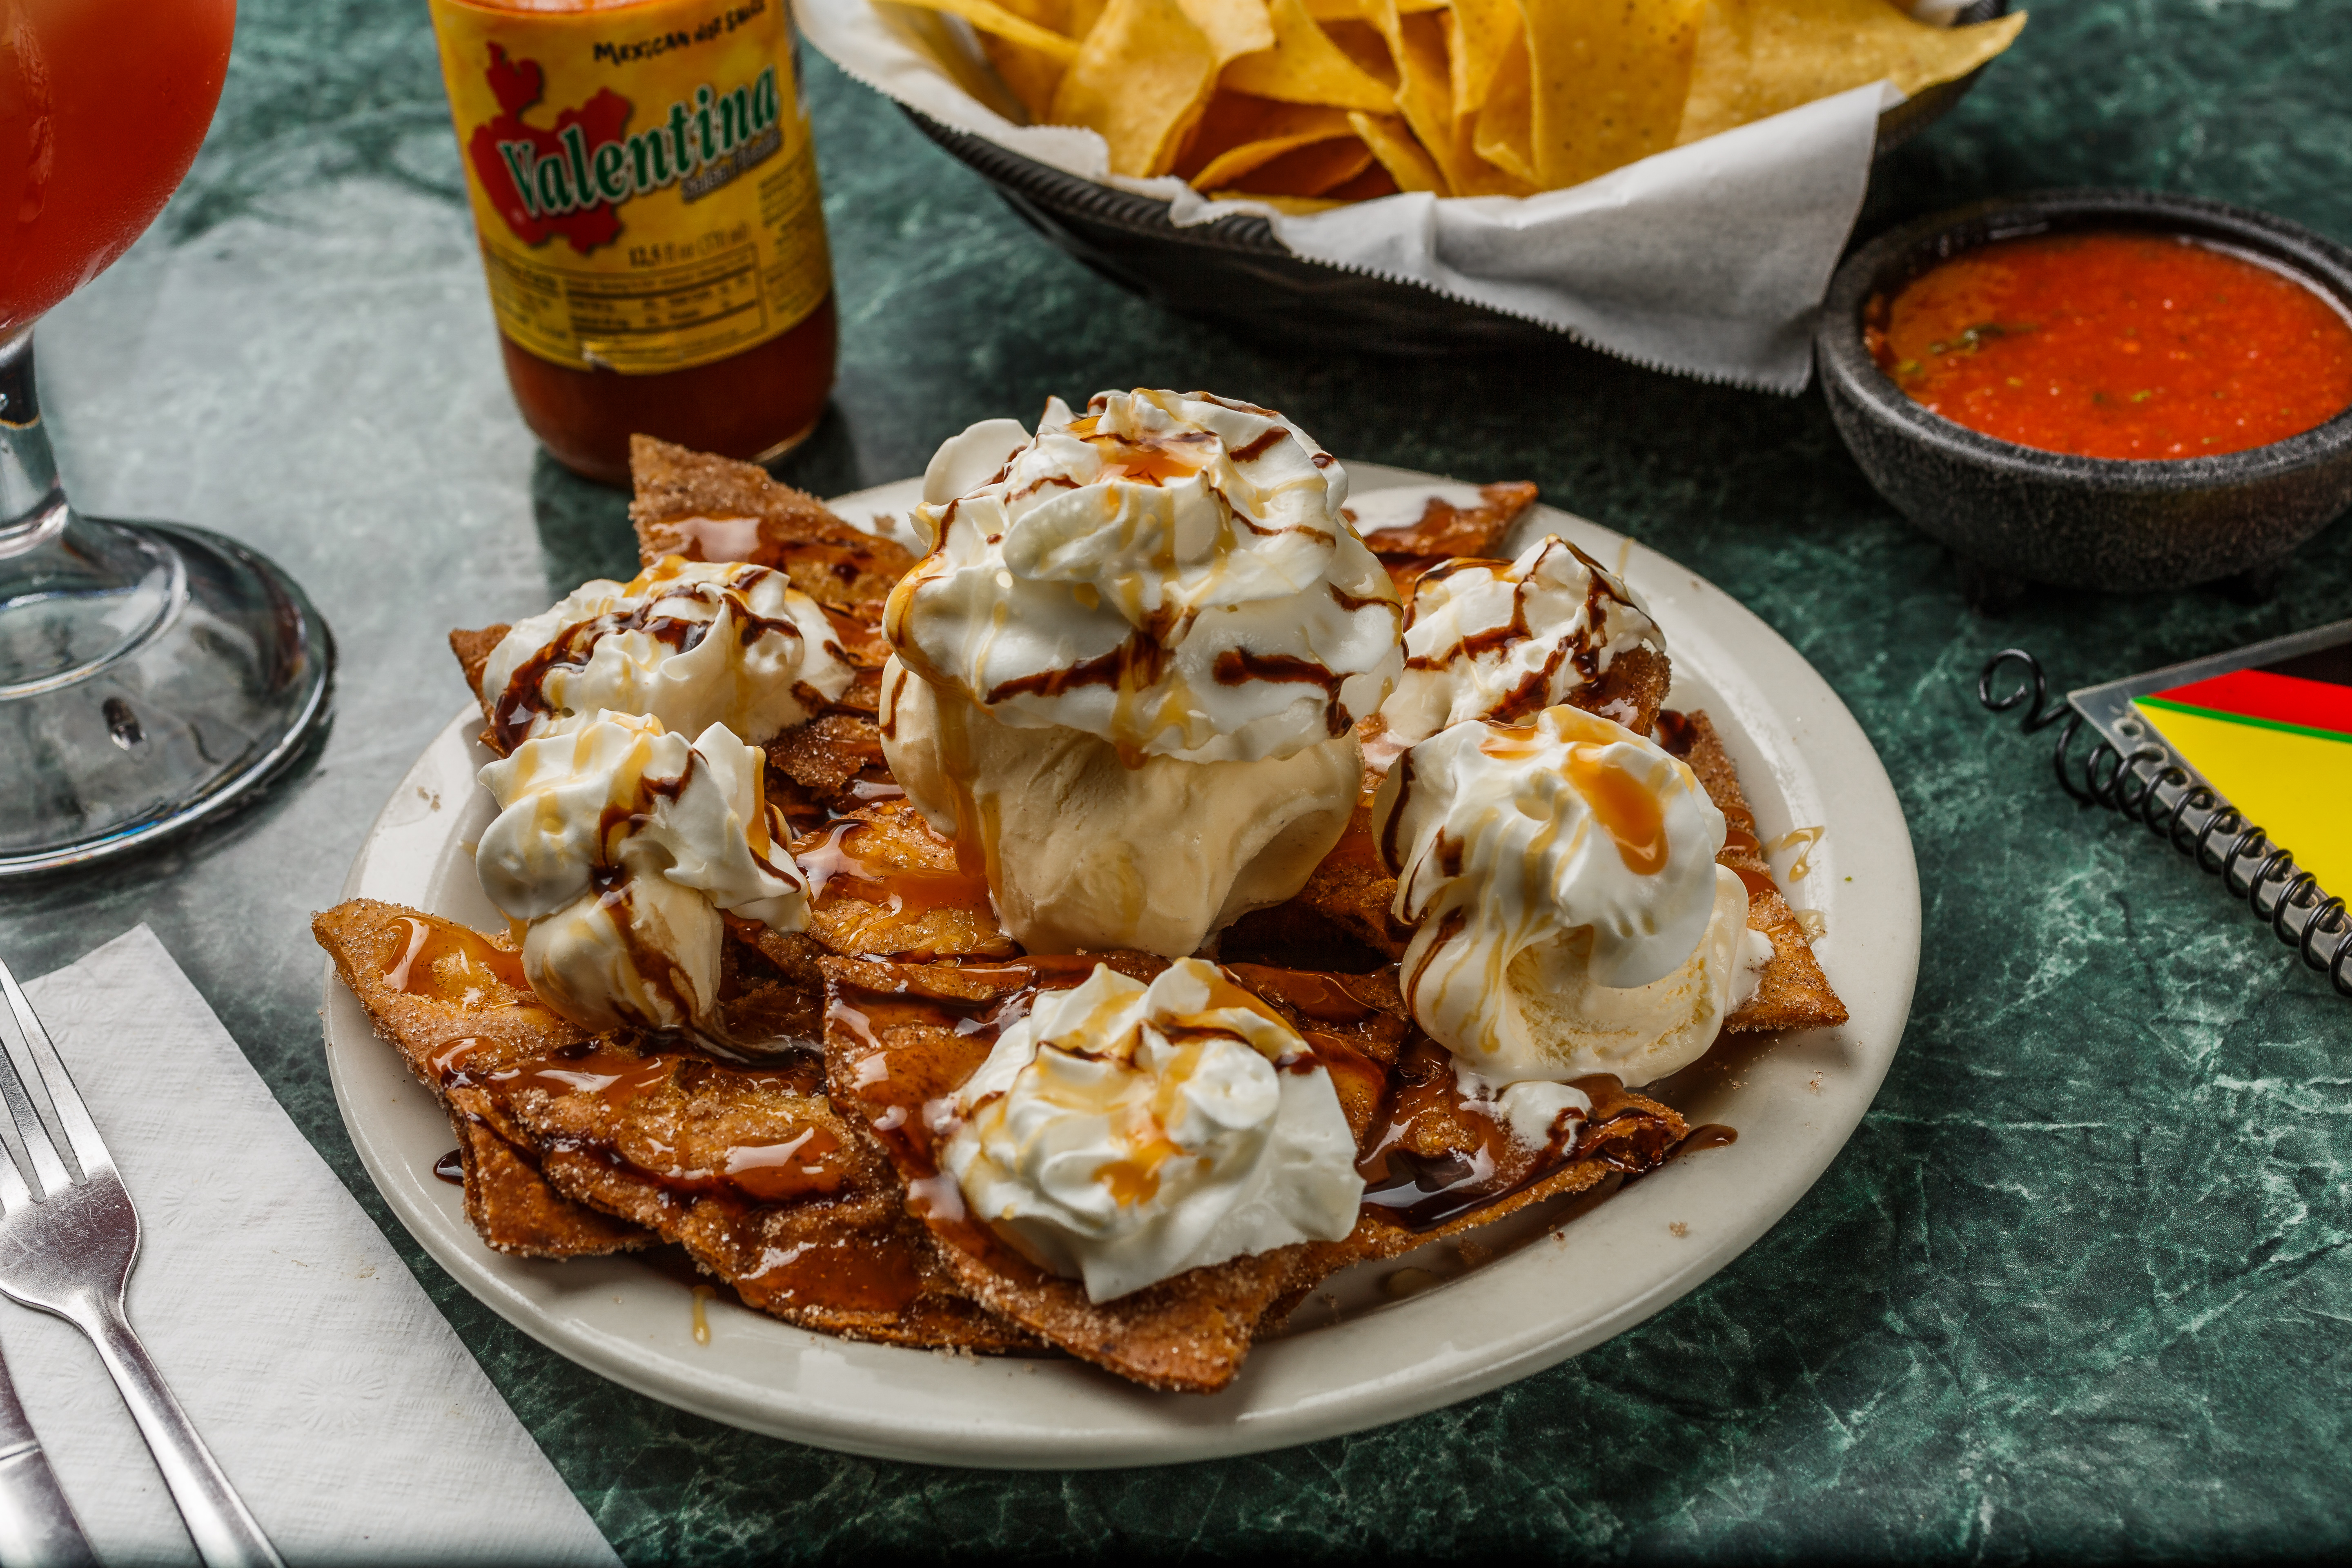 El Sombrero White Cheese Queso Dessert Nachos Longview Texas Mexican Restaurant Food Taco Fajitas